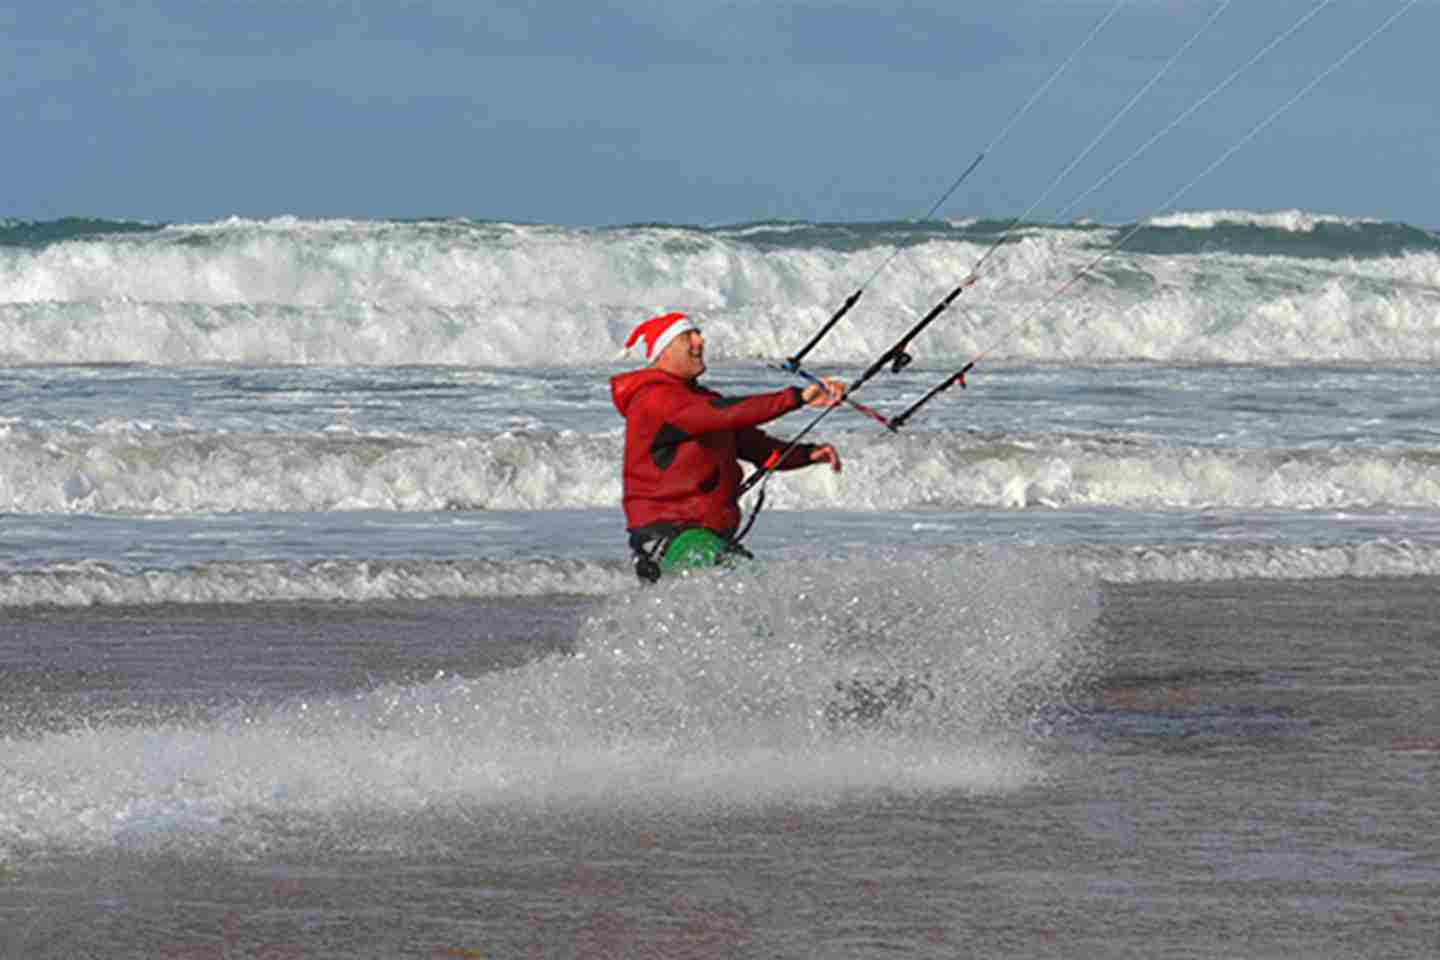 Carl-kitesurfing-at-Christmas.jpg